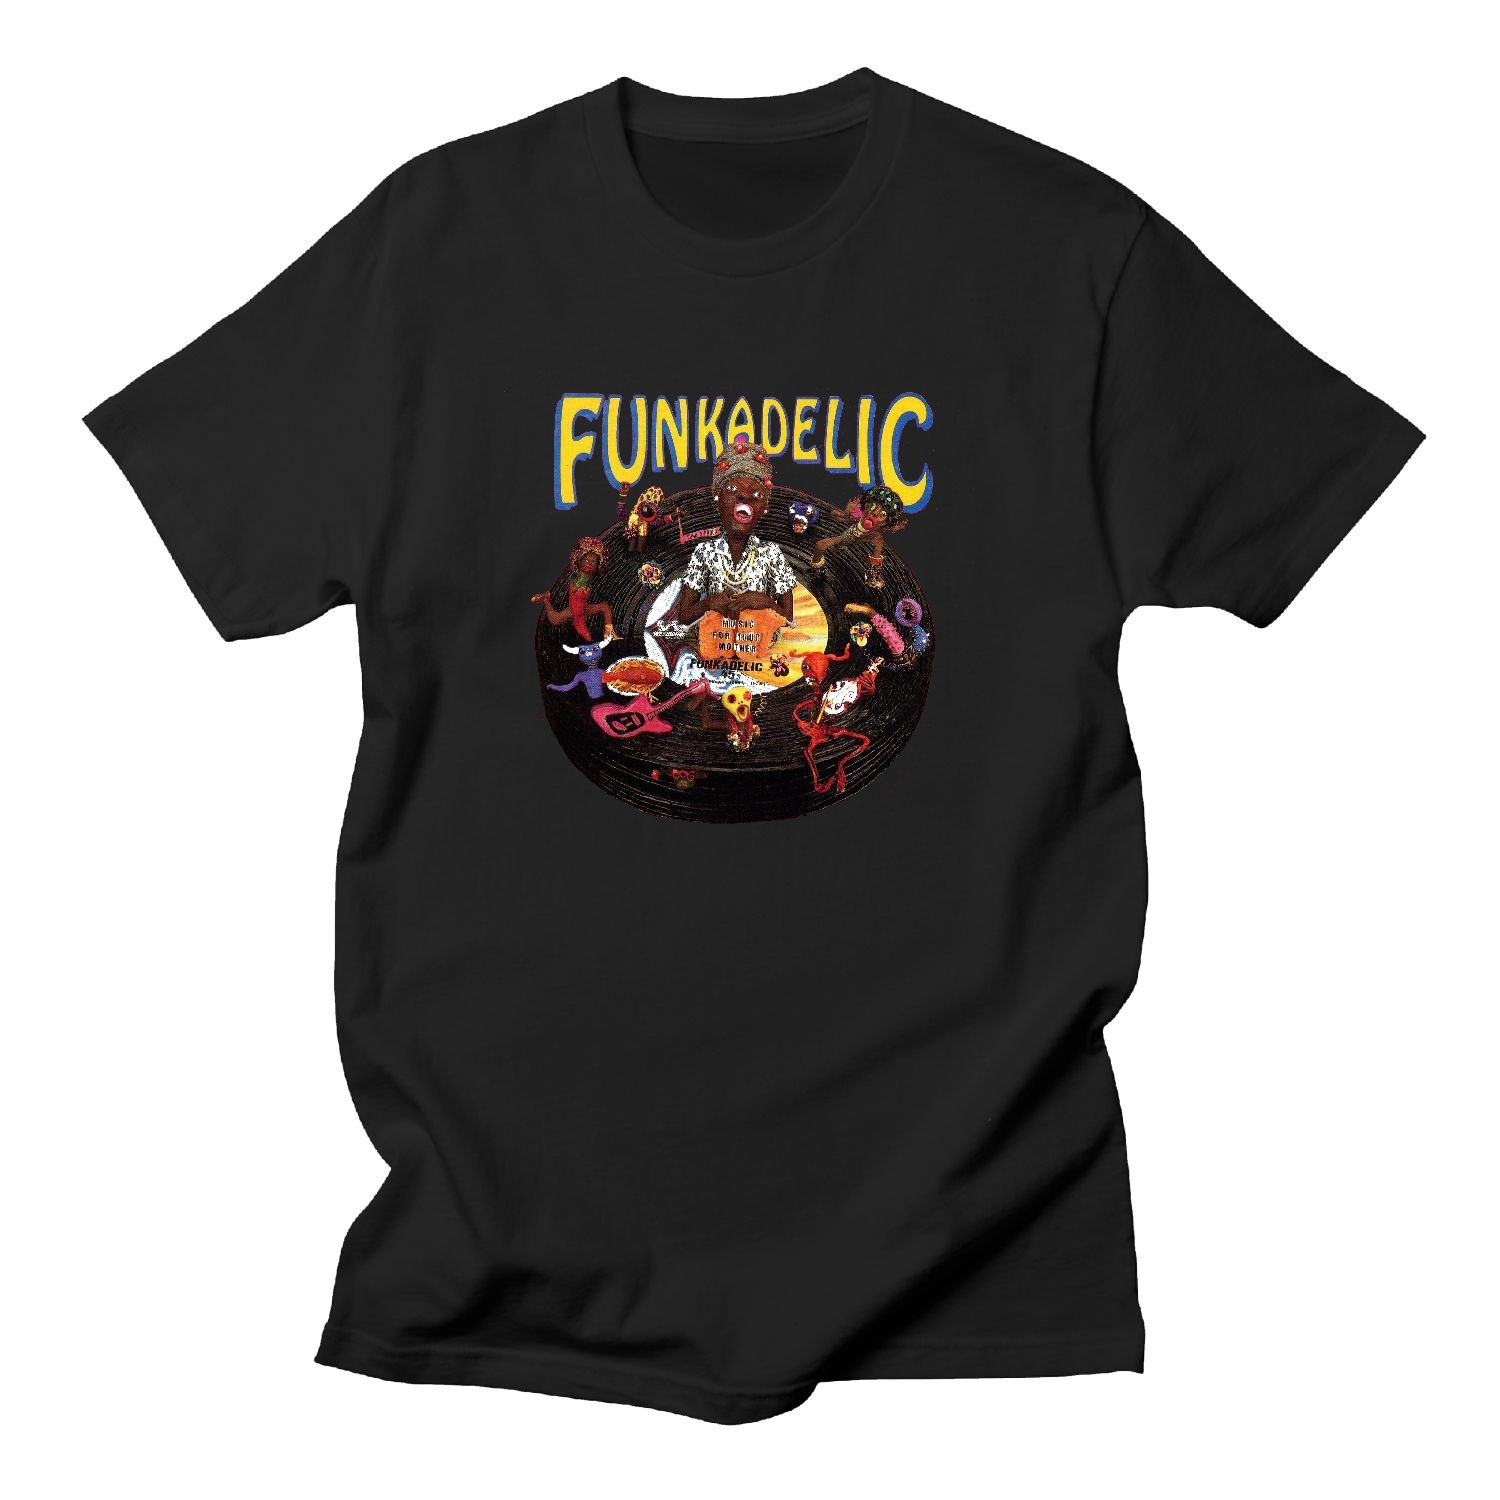 BOguan Mens T-Shirts Funk Seven adelic Music for Your Mother Short Sleeve Tees X-Large